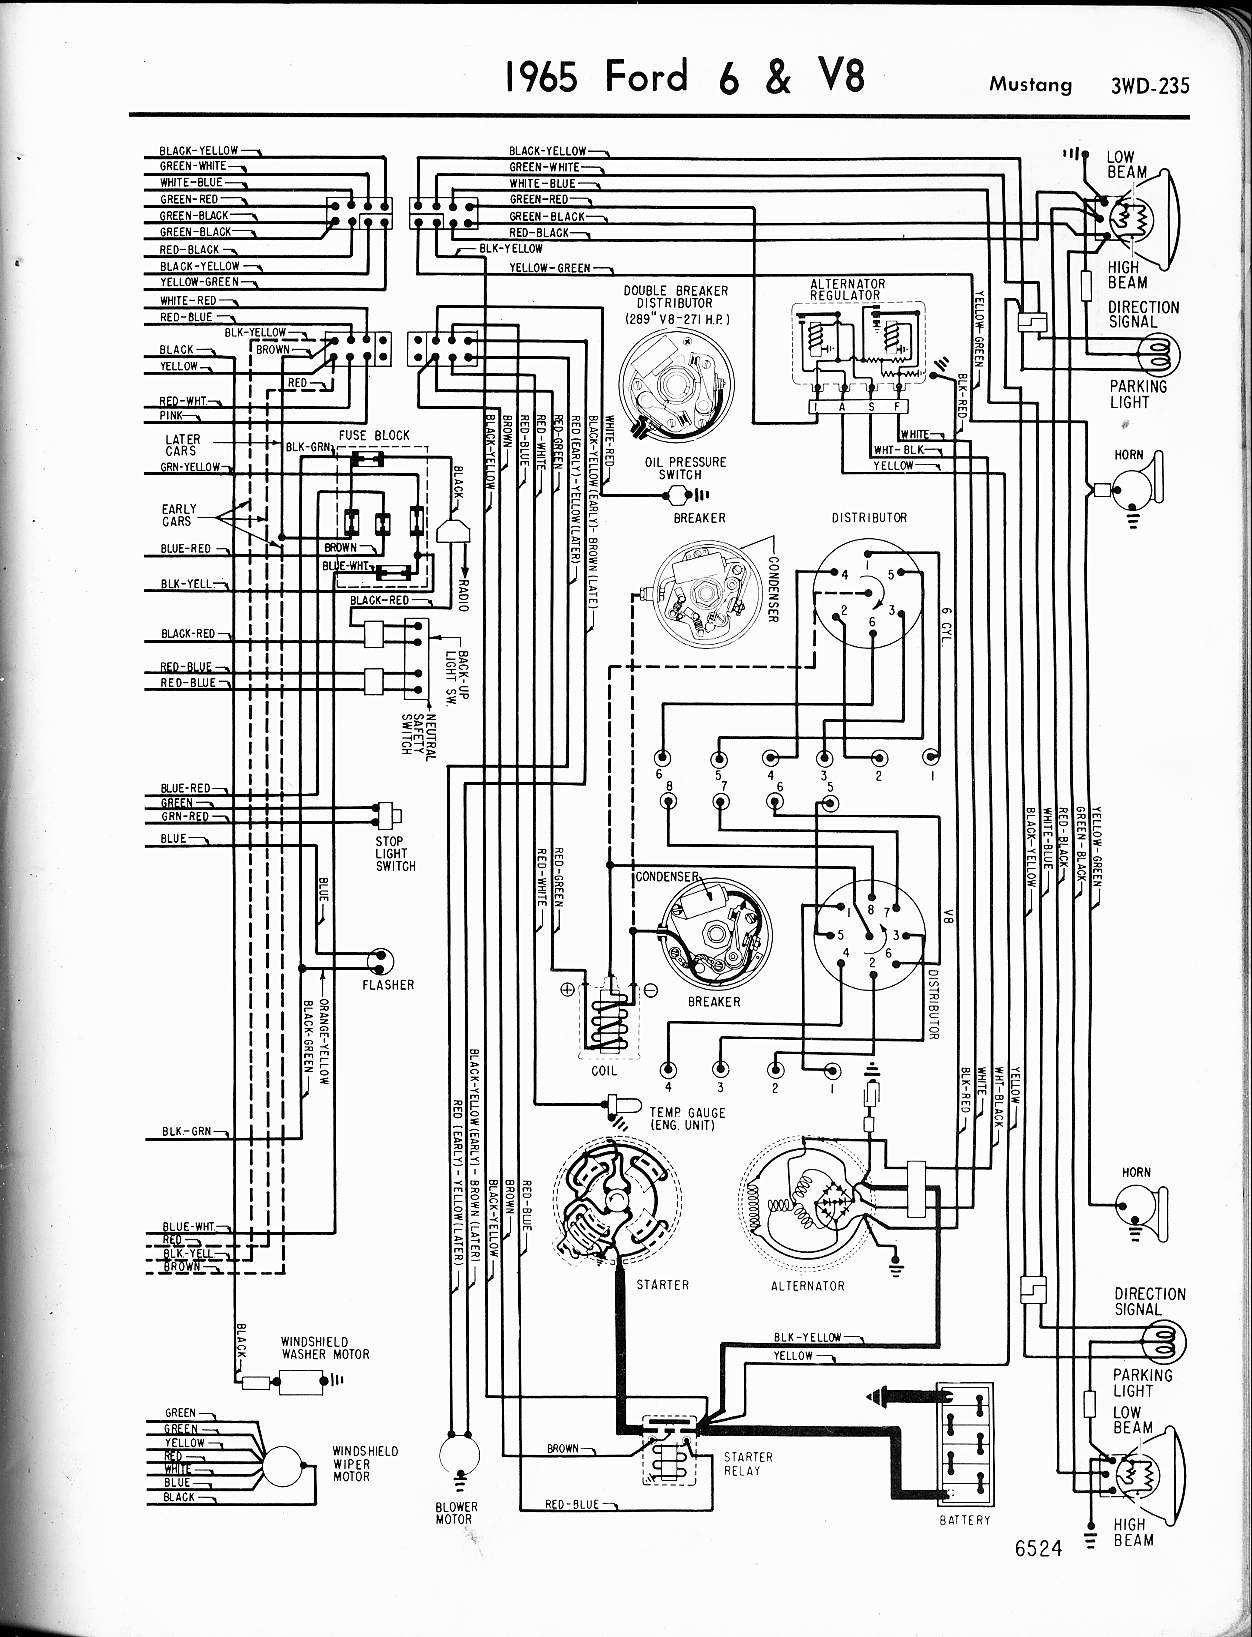 1965_mustang_wiring_2 ford diagrams Terminator Time Loop Diagram at aneh.co